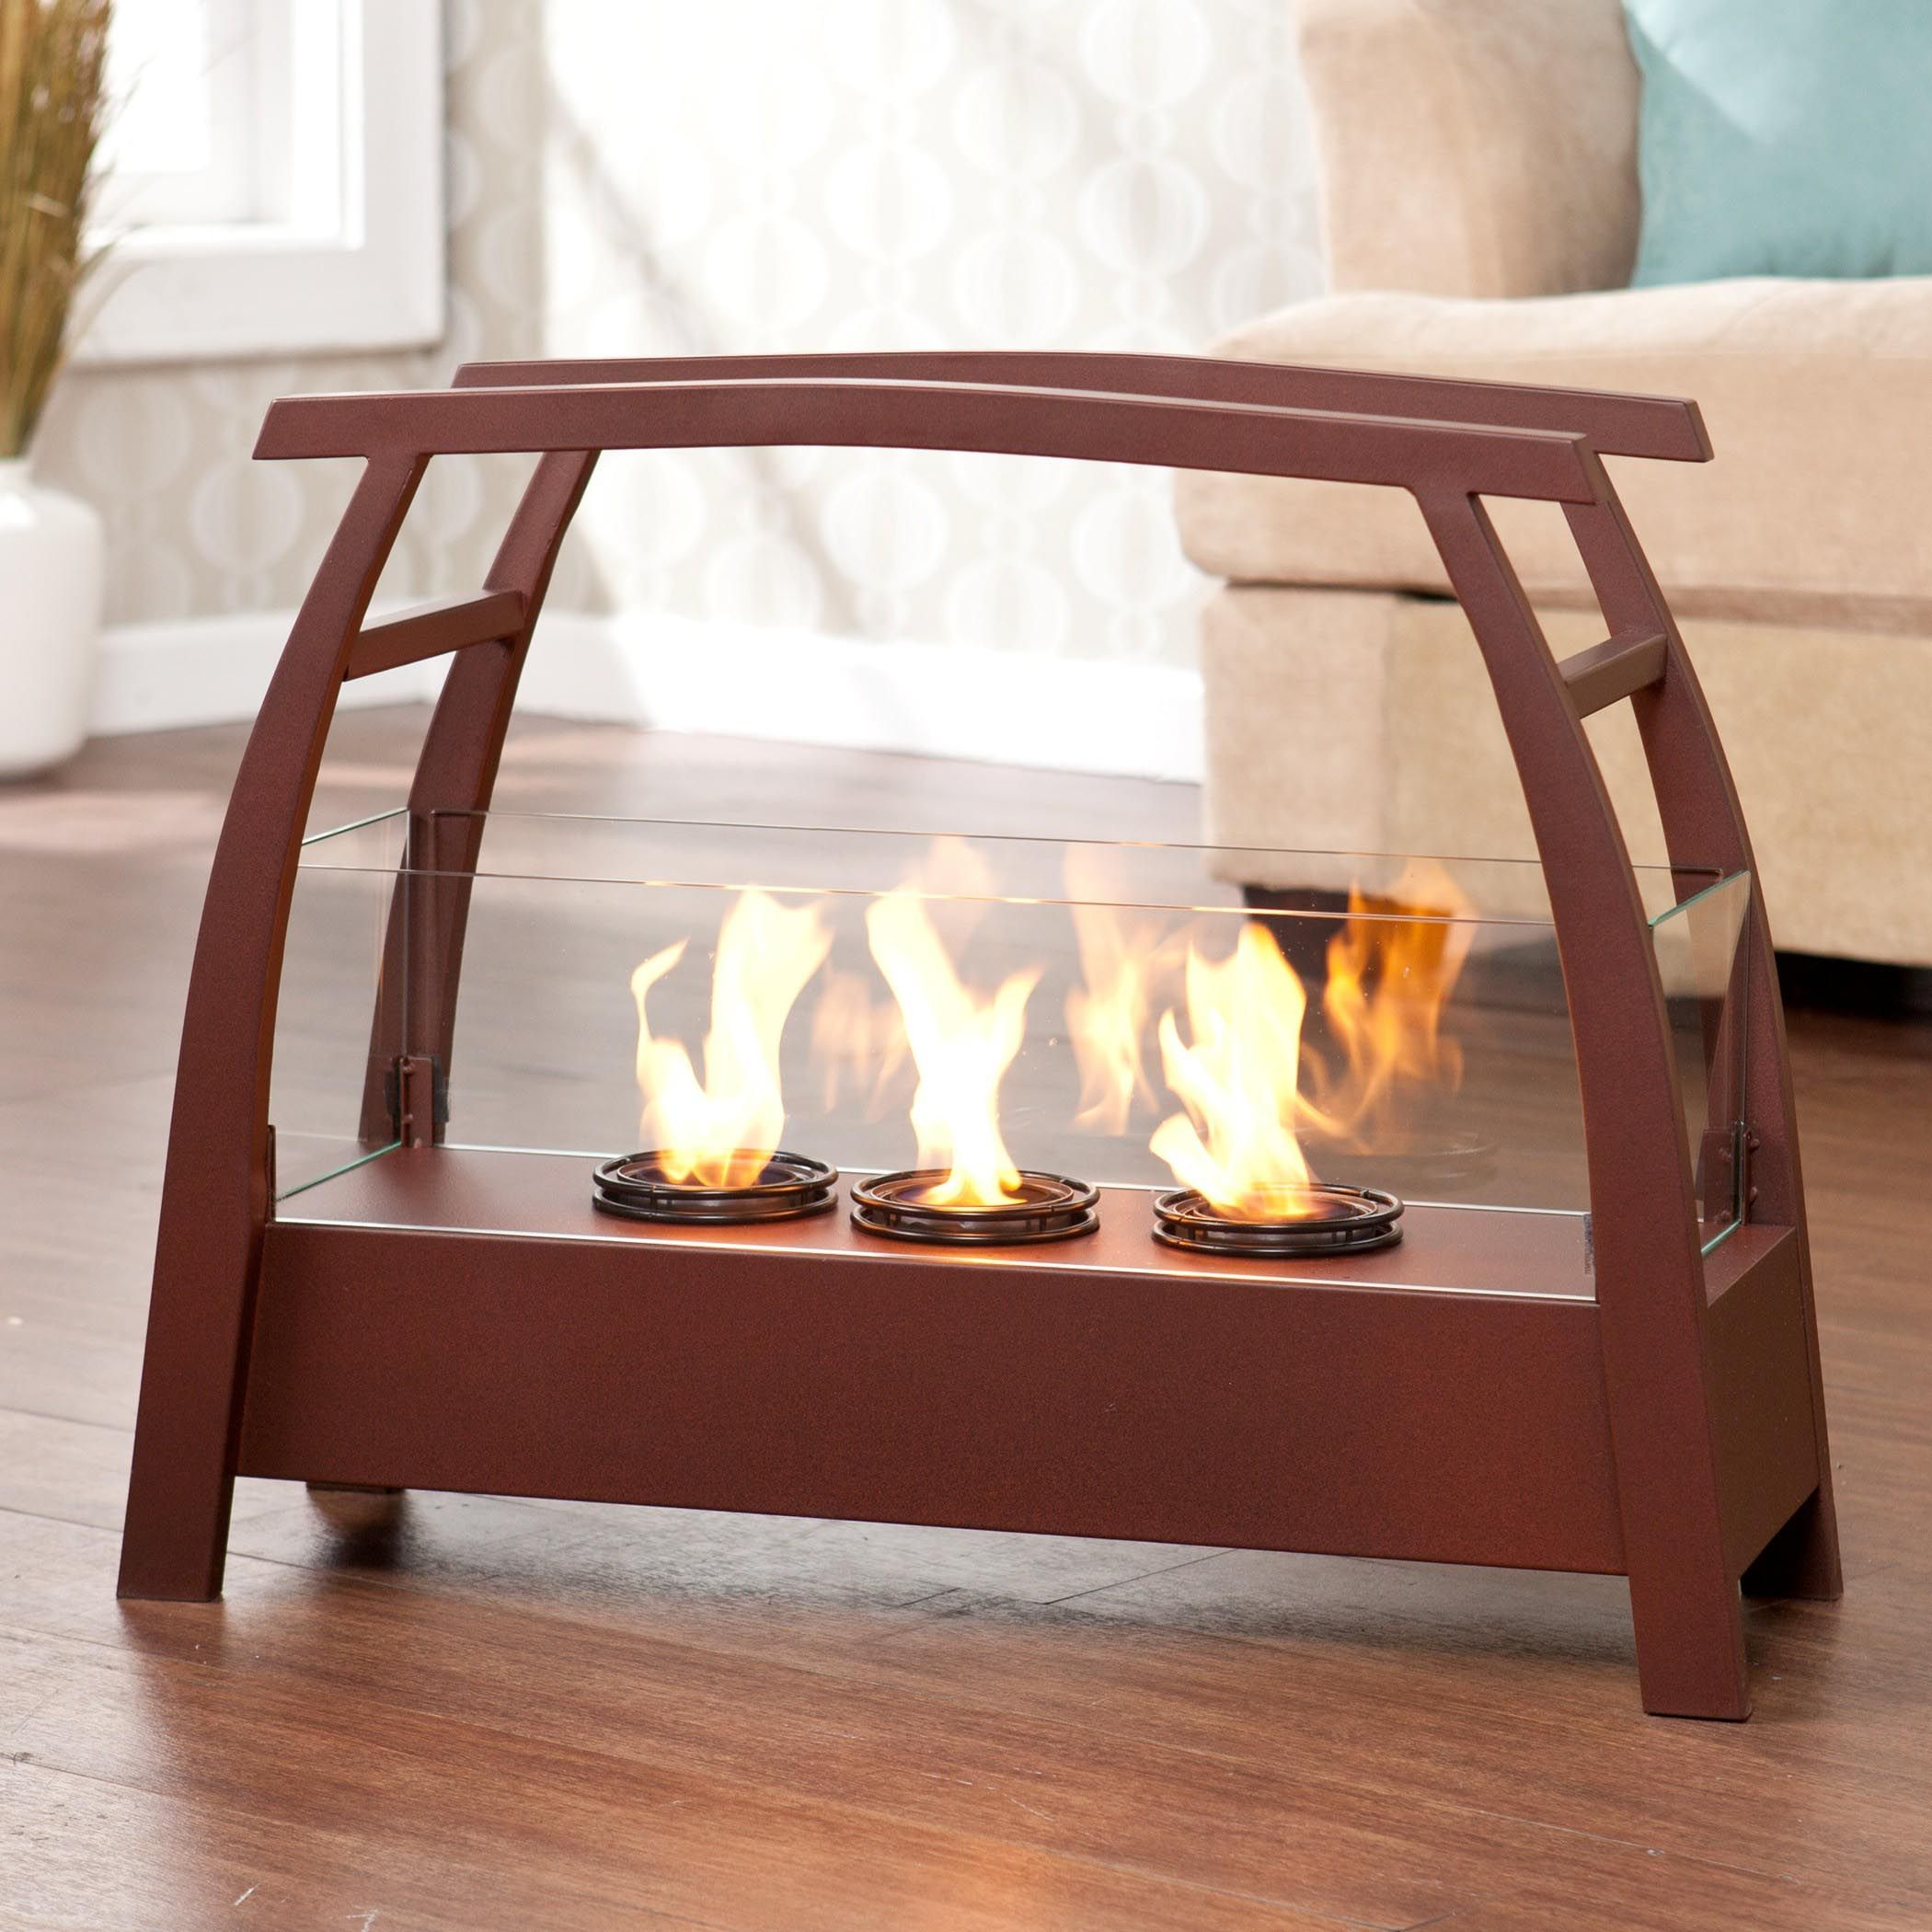 diy indoor fire pit fire pit pinterest fire pit decor and craft